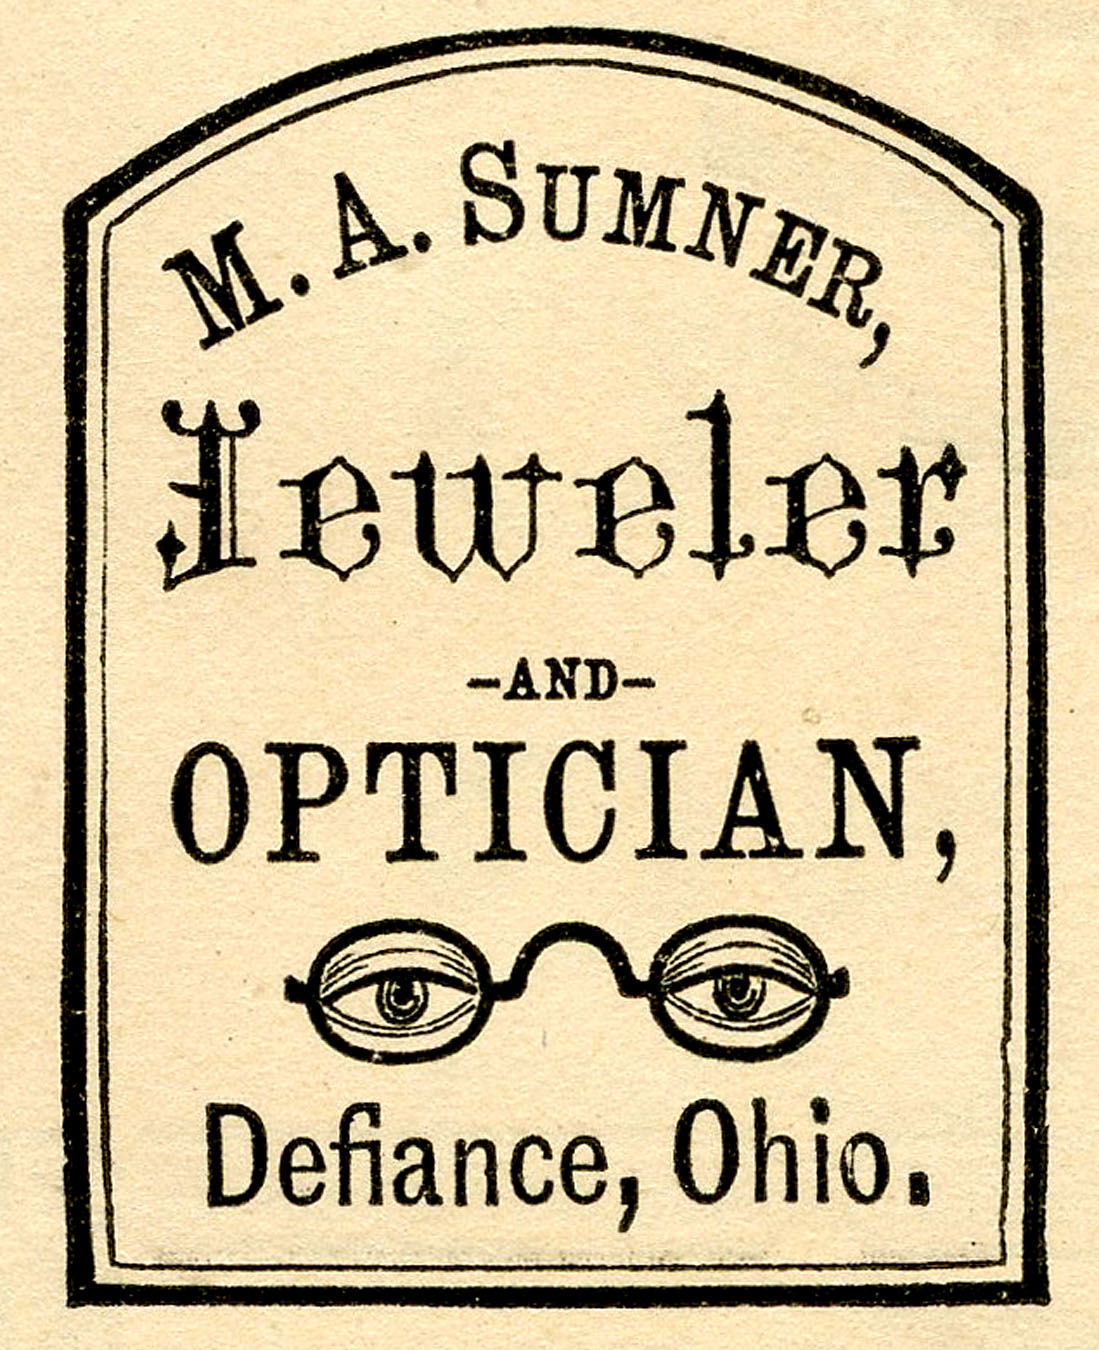 Antique Advertising Clip Art   Optician   Jeweler Label